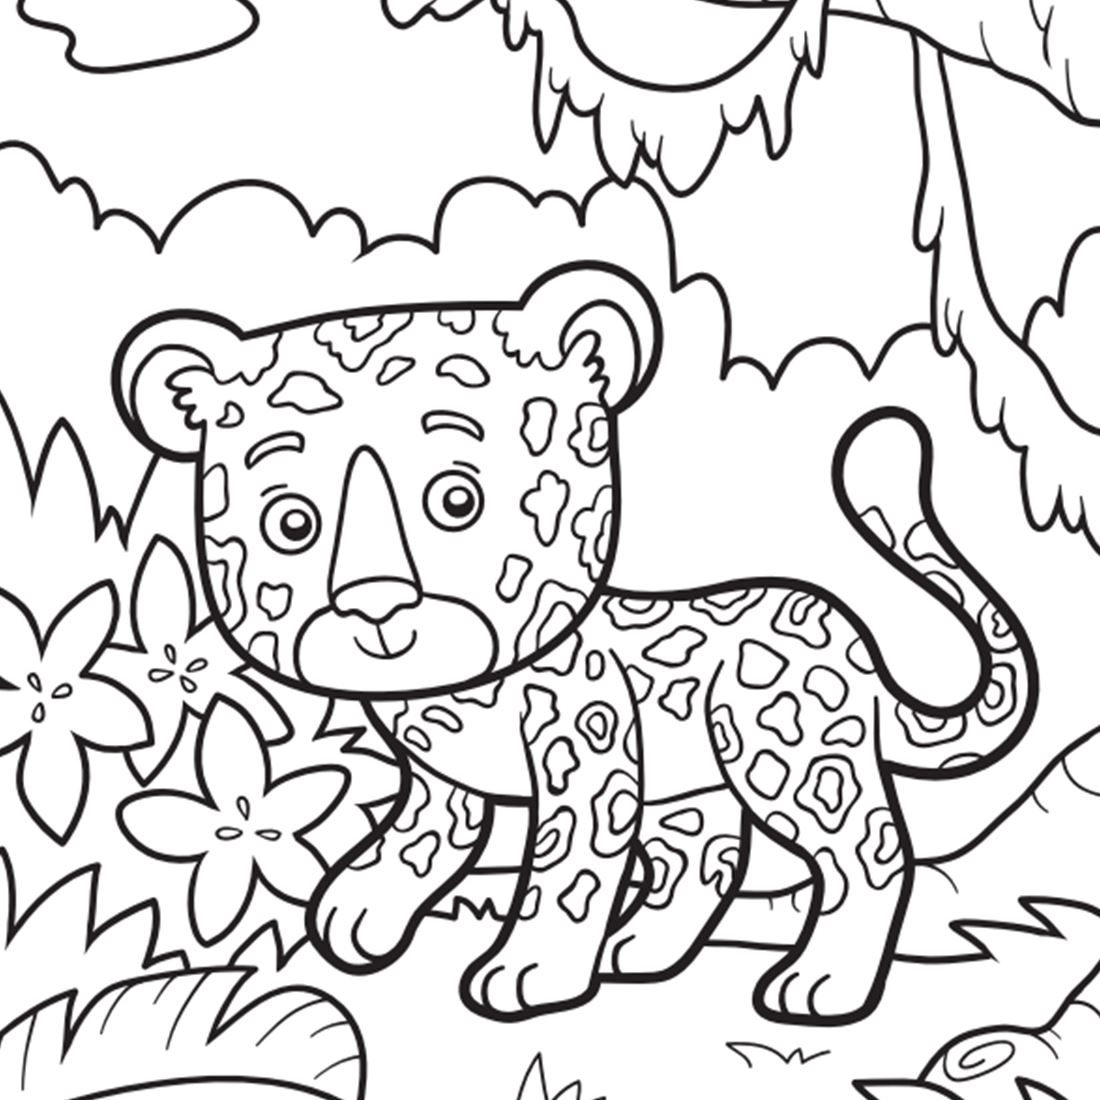 Coloring book drawing of a cheetah